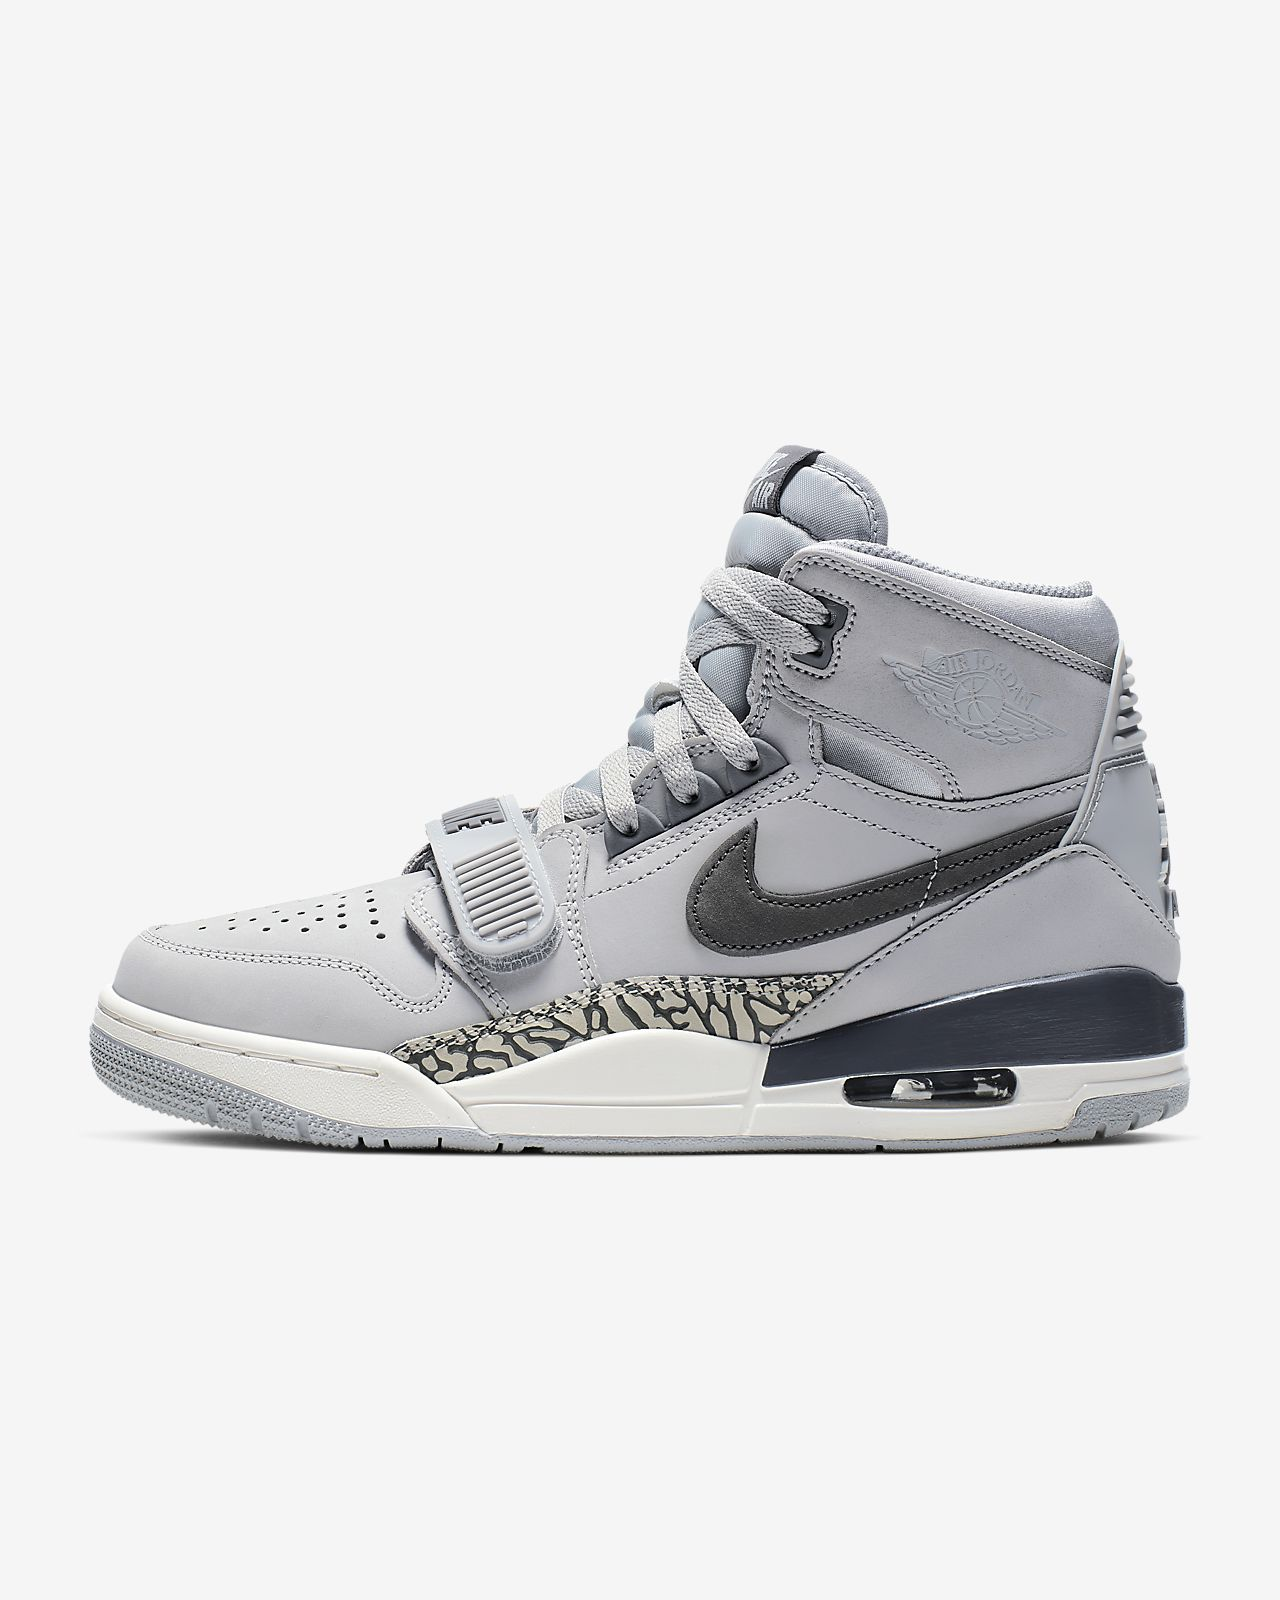 7eaacf0e4fb2 Air Jordan Legacy 312 Men s Shoe . Nike.com